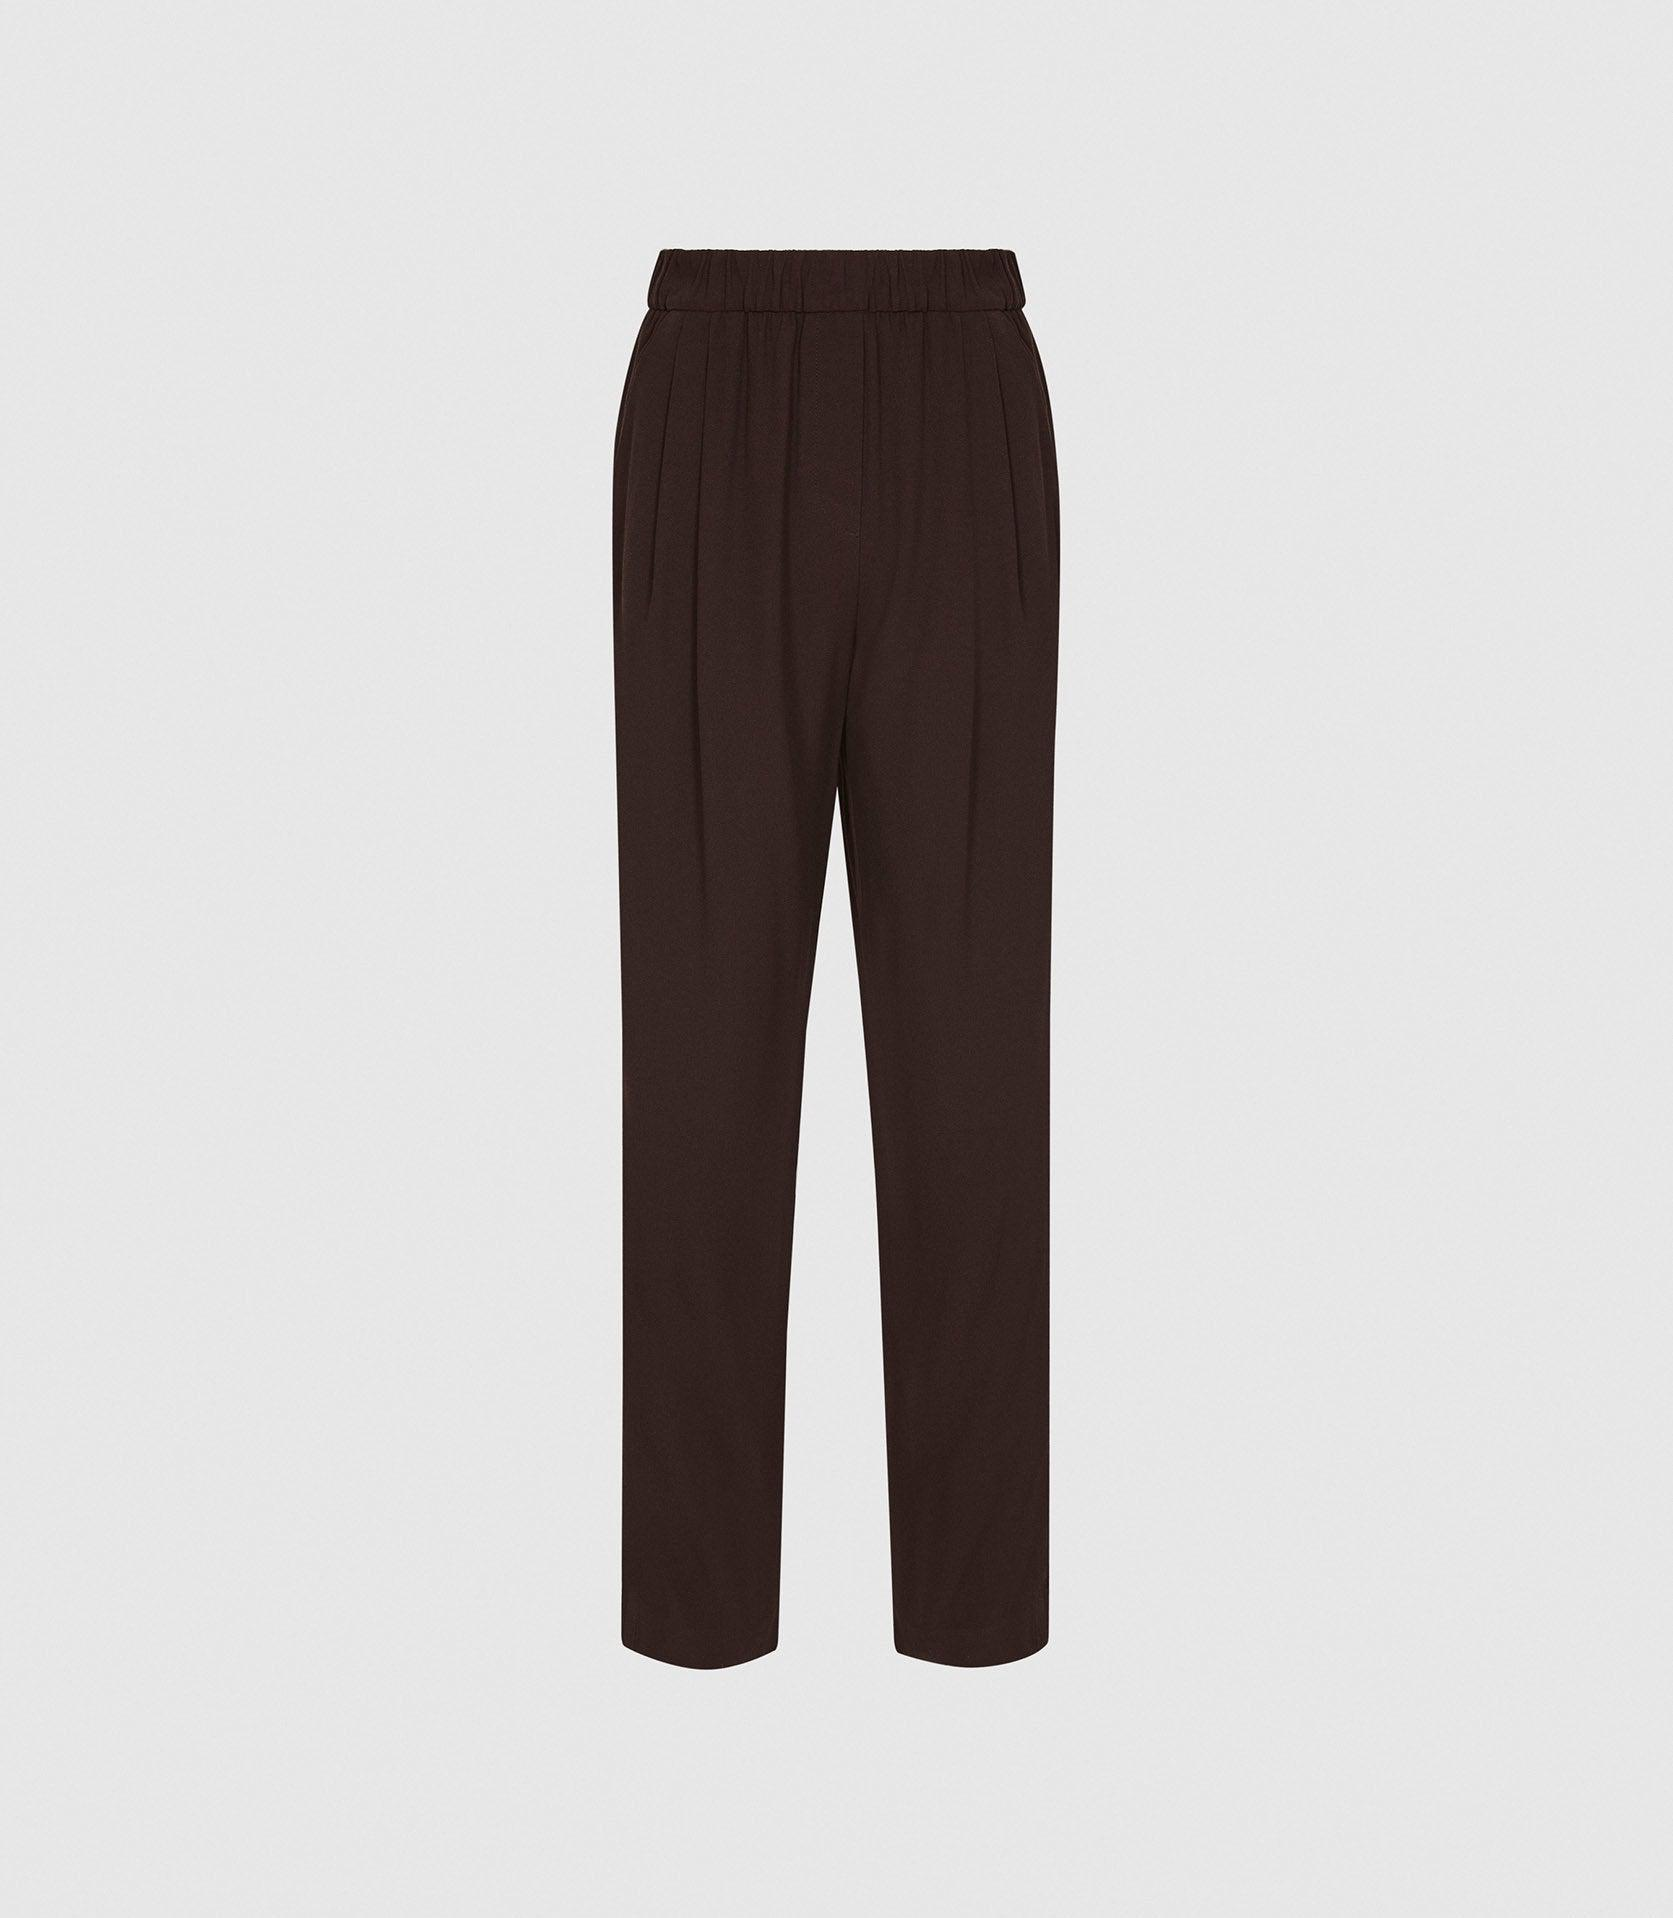 ROXY - RELAXED FIT TAPERED TROUSERS 4